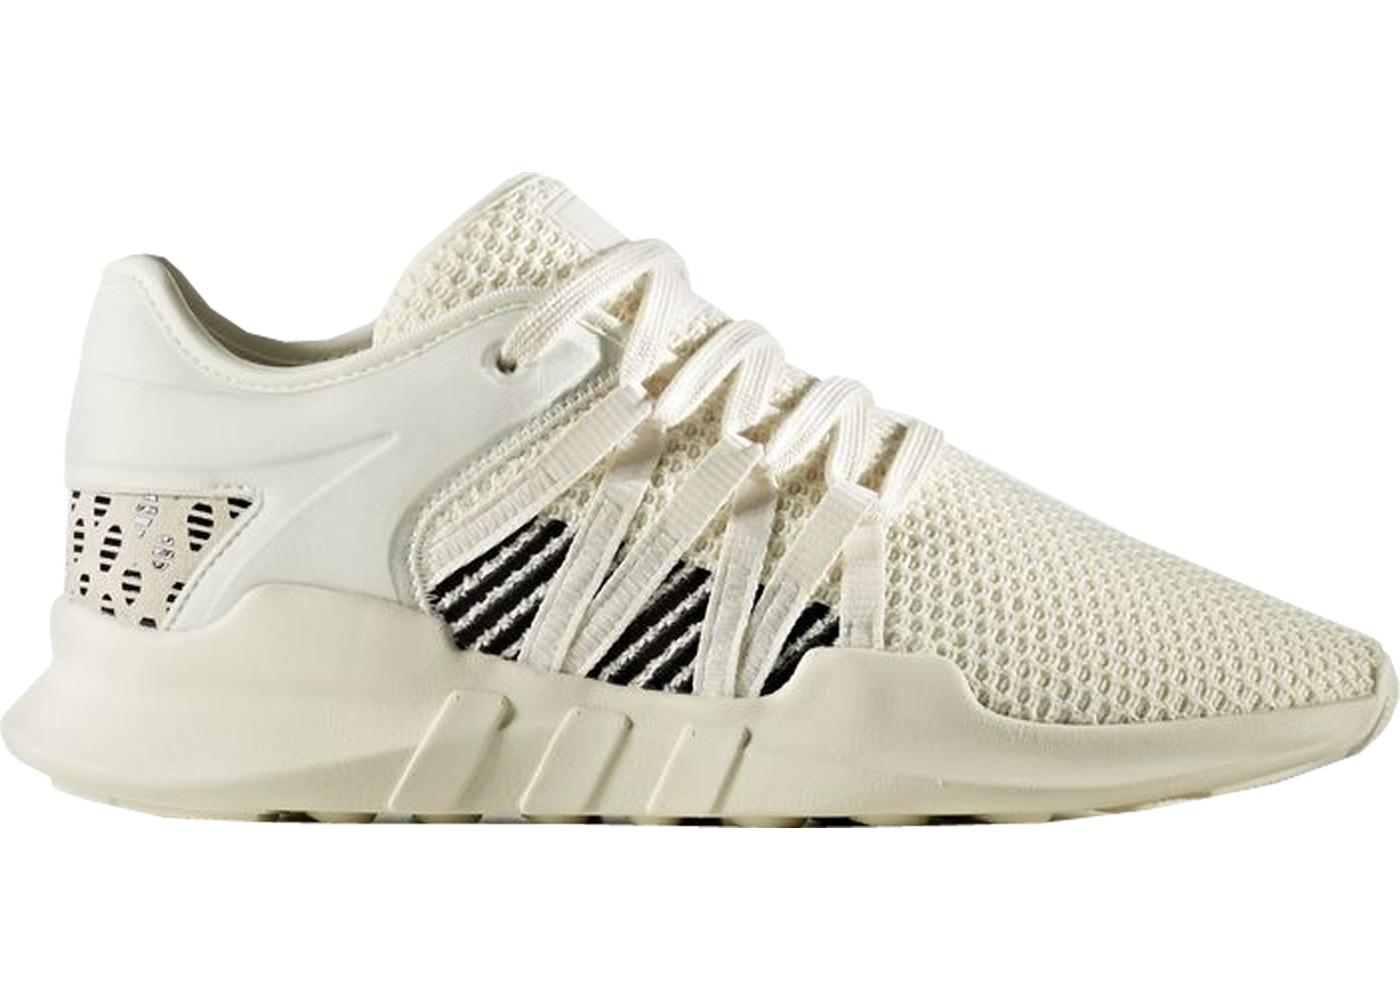 100% authentic c4a1d 08598 adidas EQT Racing Adv Off White (W)